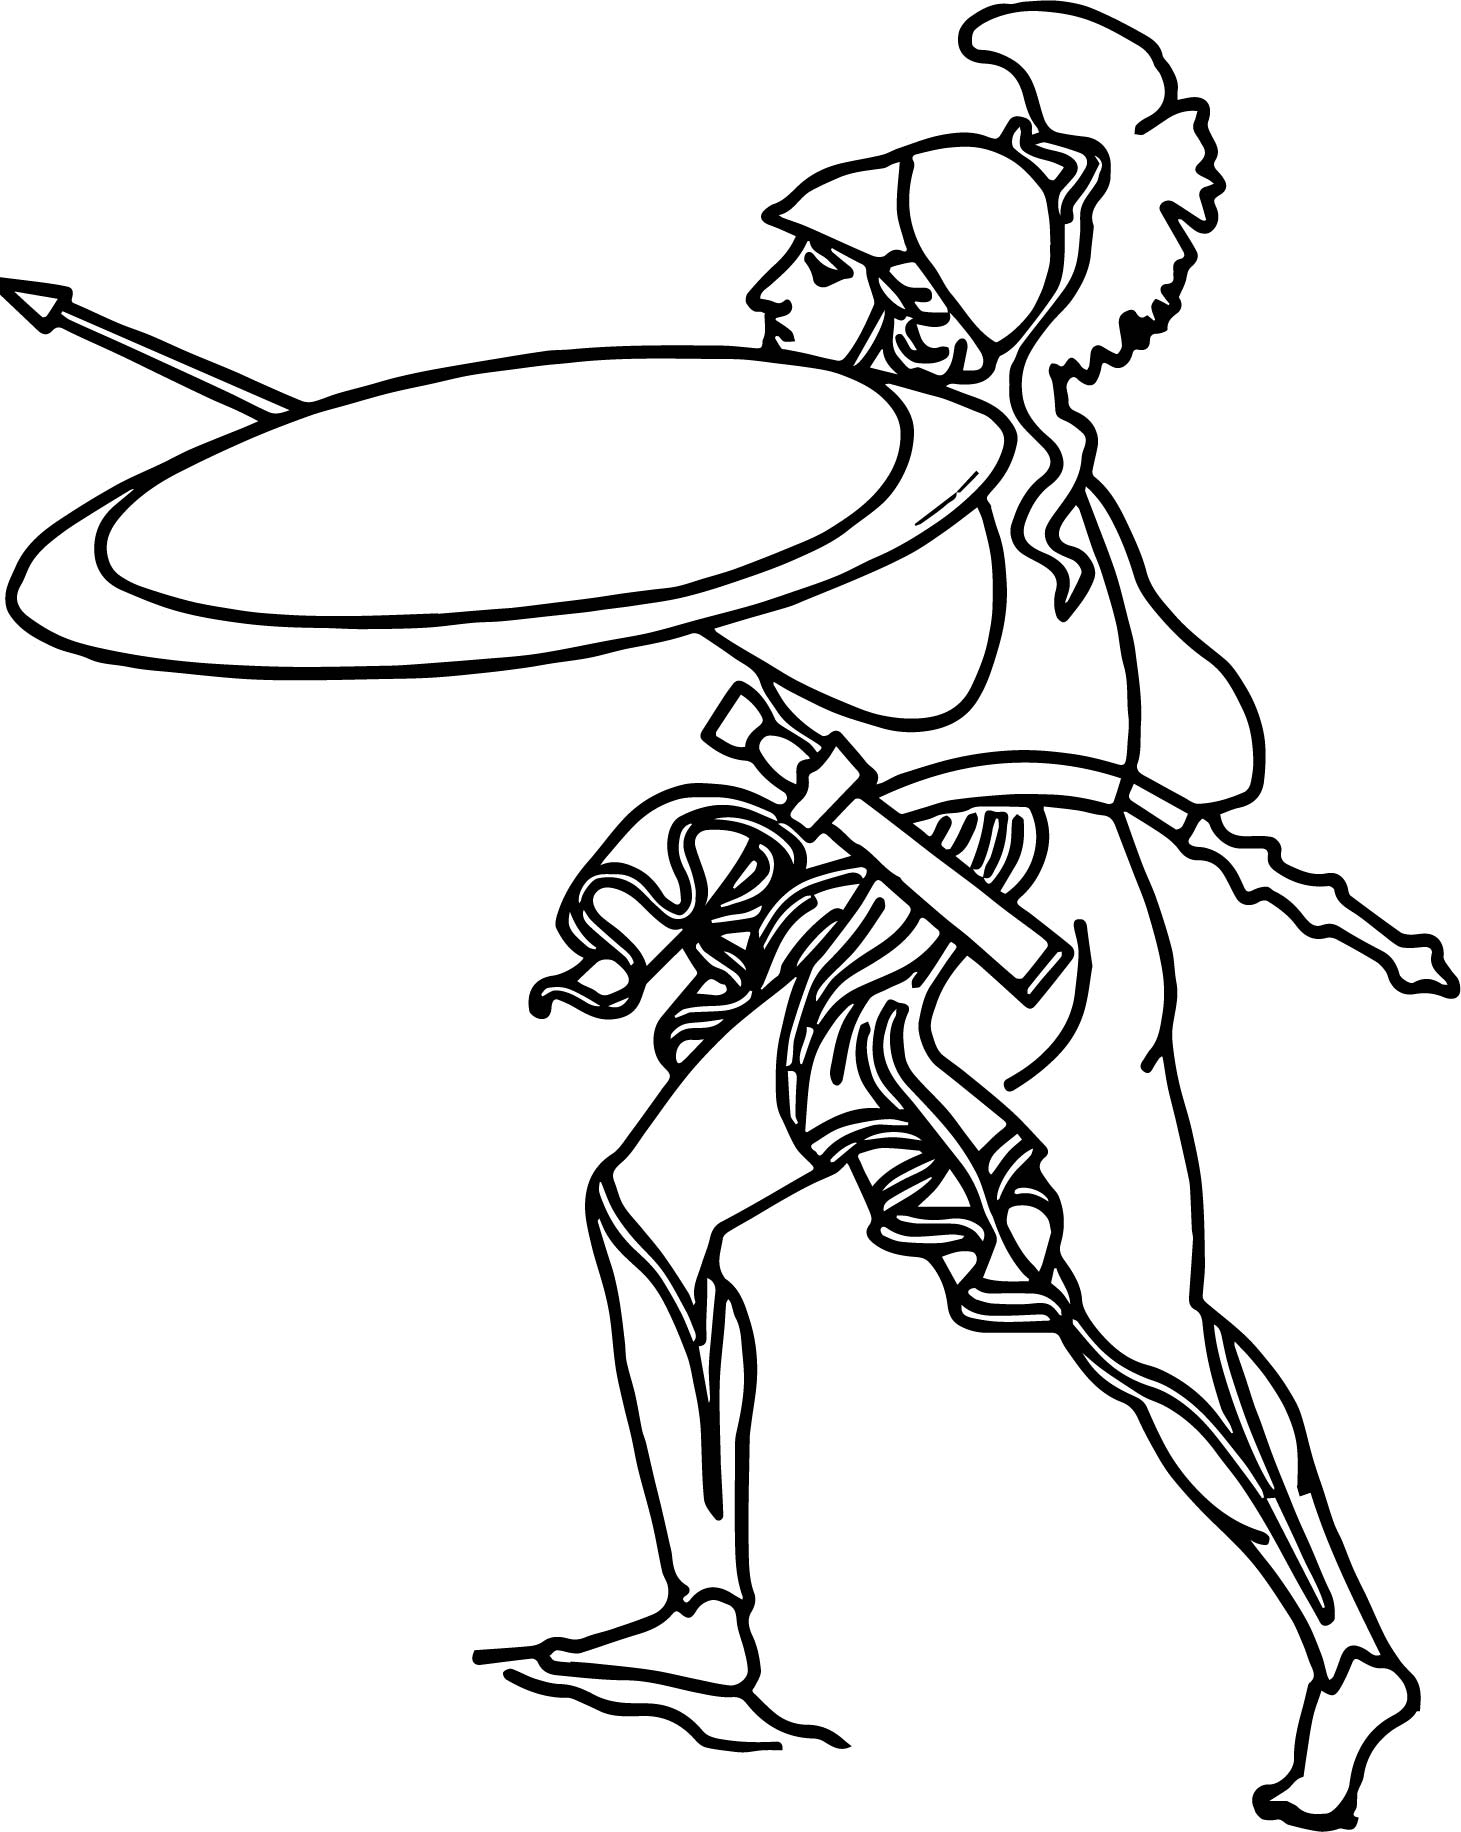 ancient roman coloring pages | Ancient Rome Soldier Coloring Page | Wecoloringpage.com